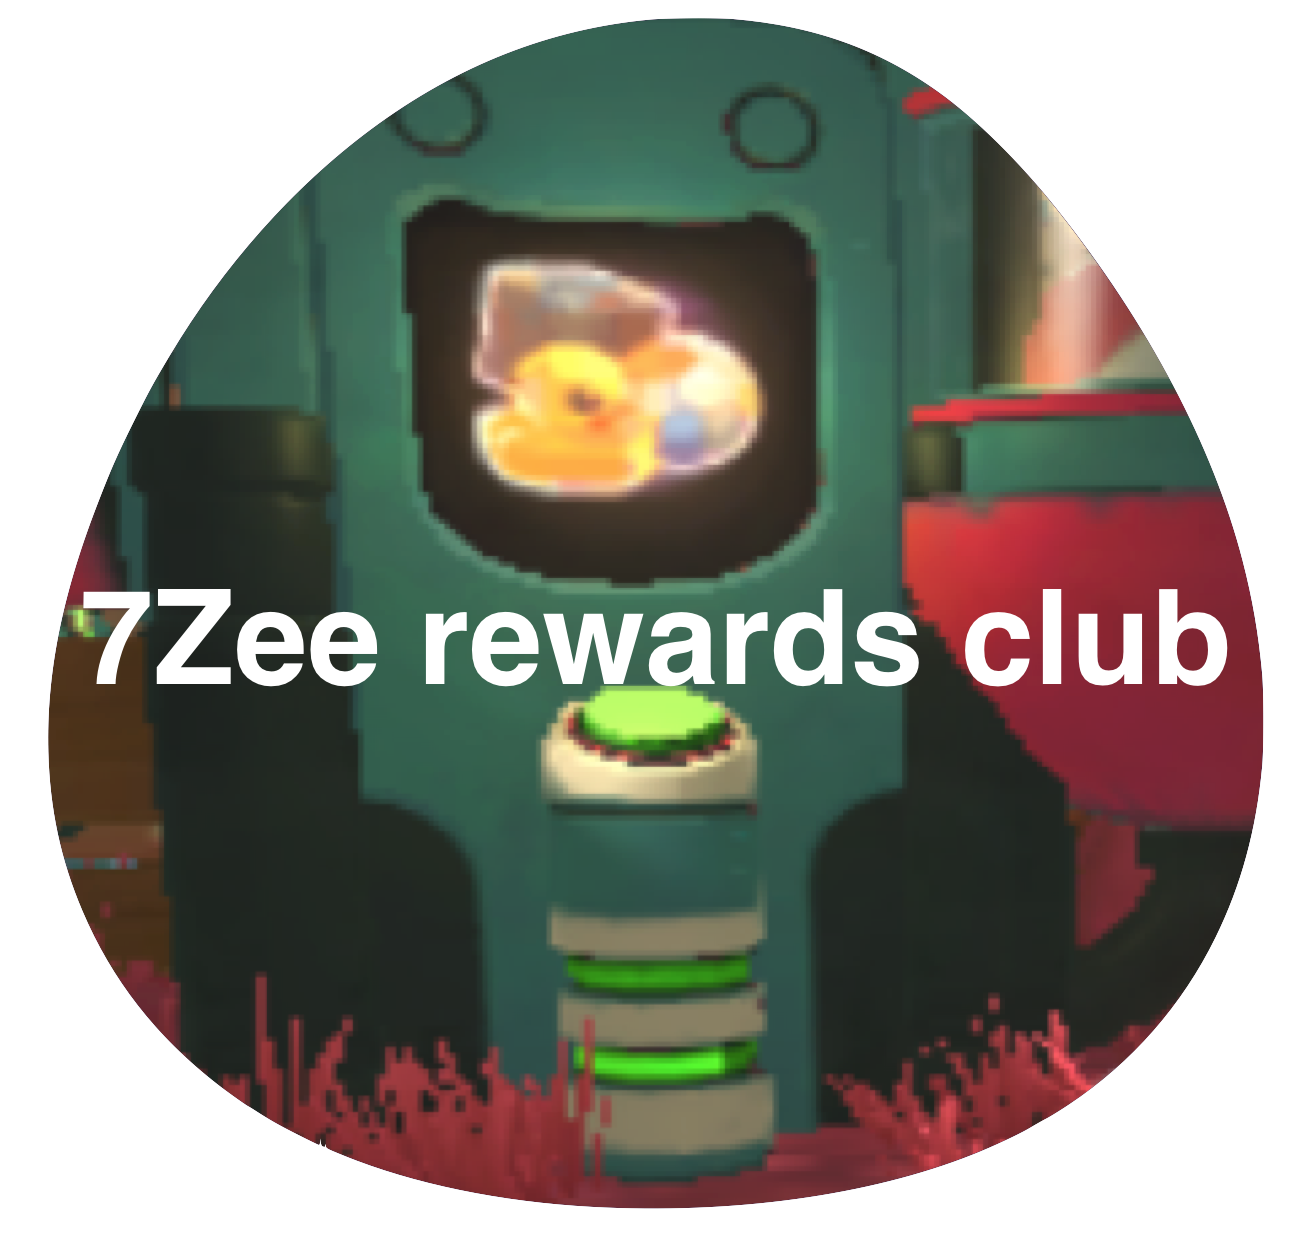 7Z rewards club